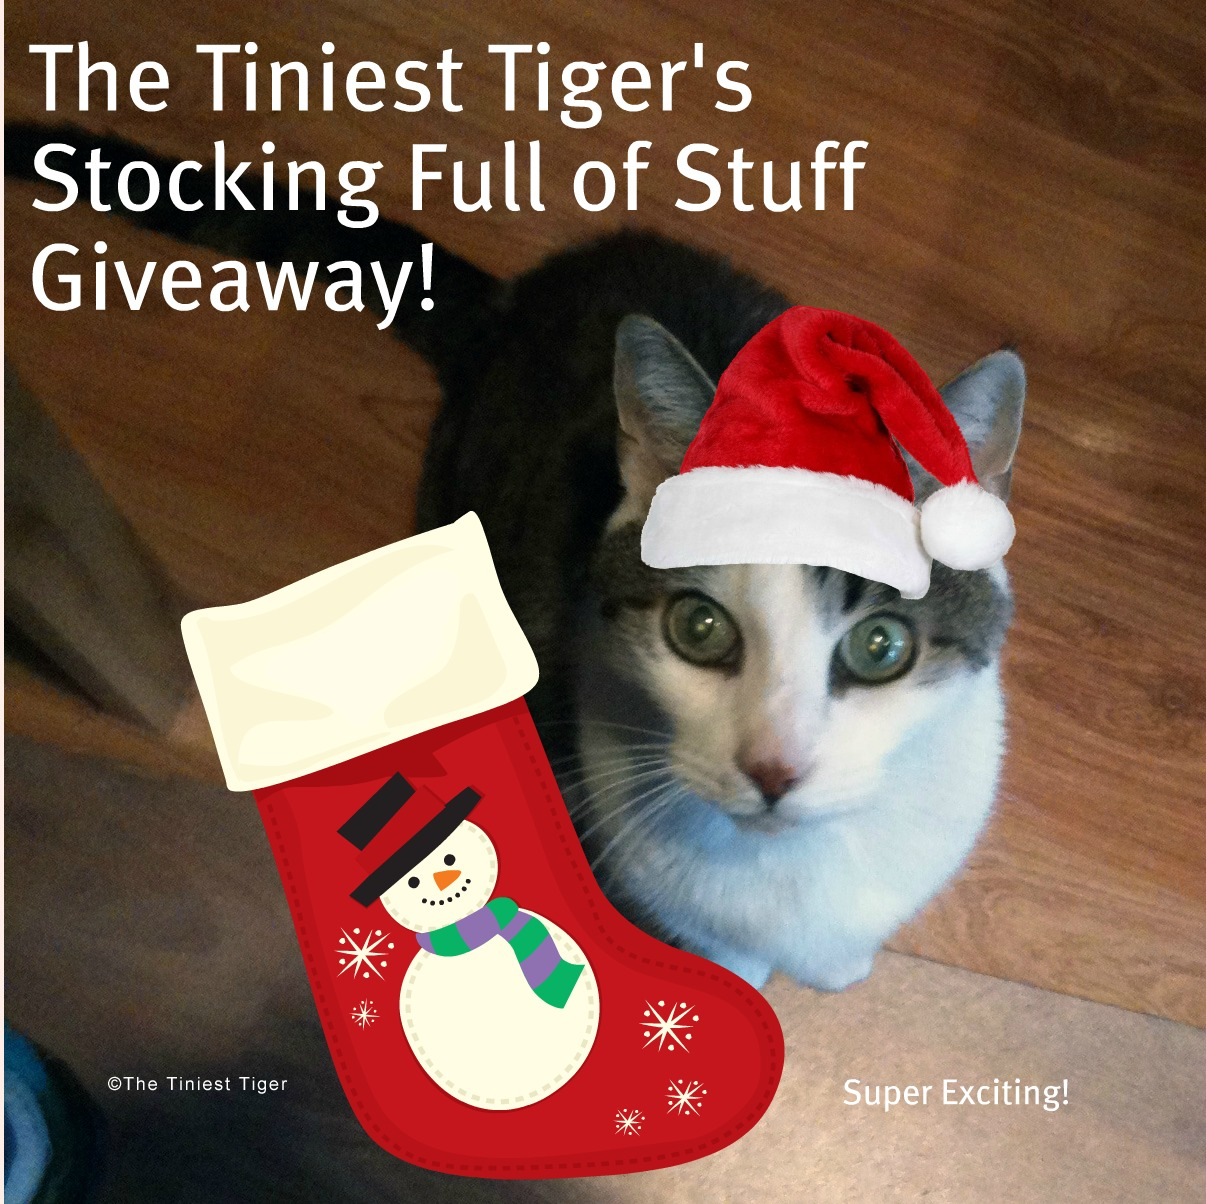 Cat Stocking Full of Stuff Giveaway!